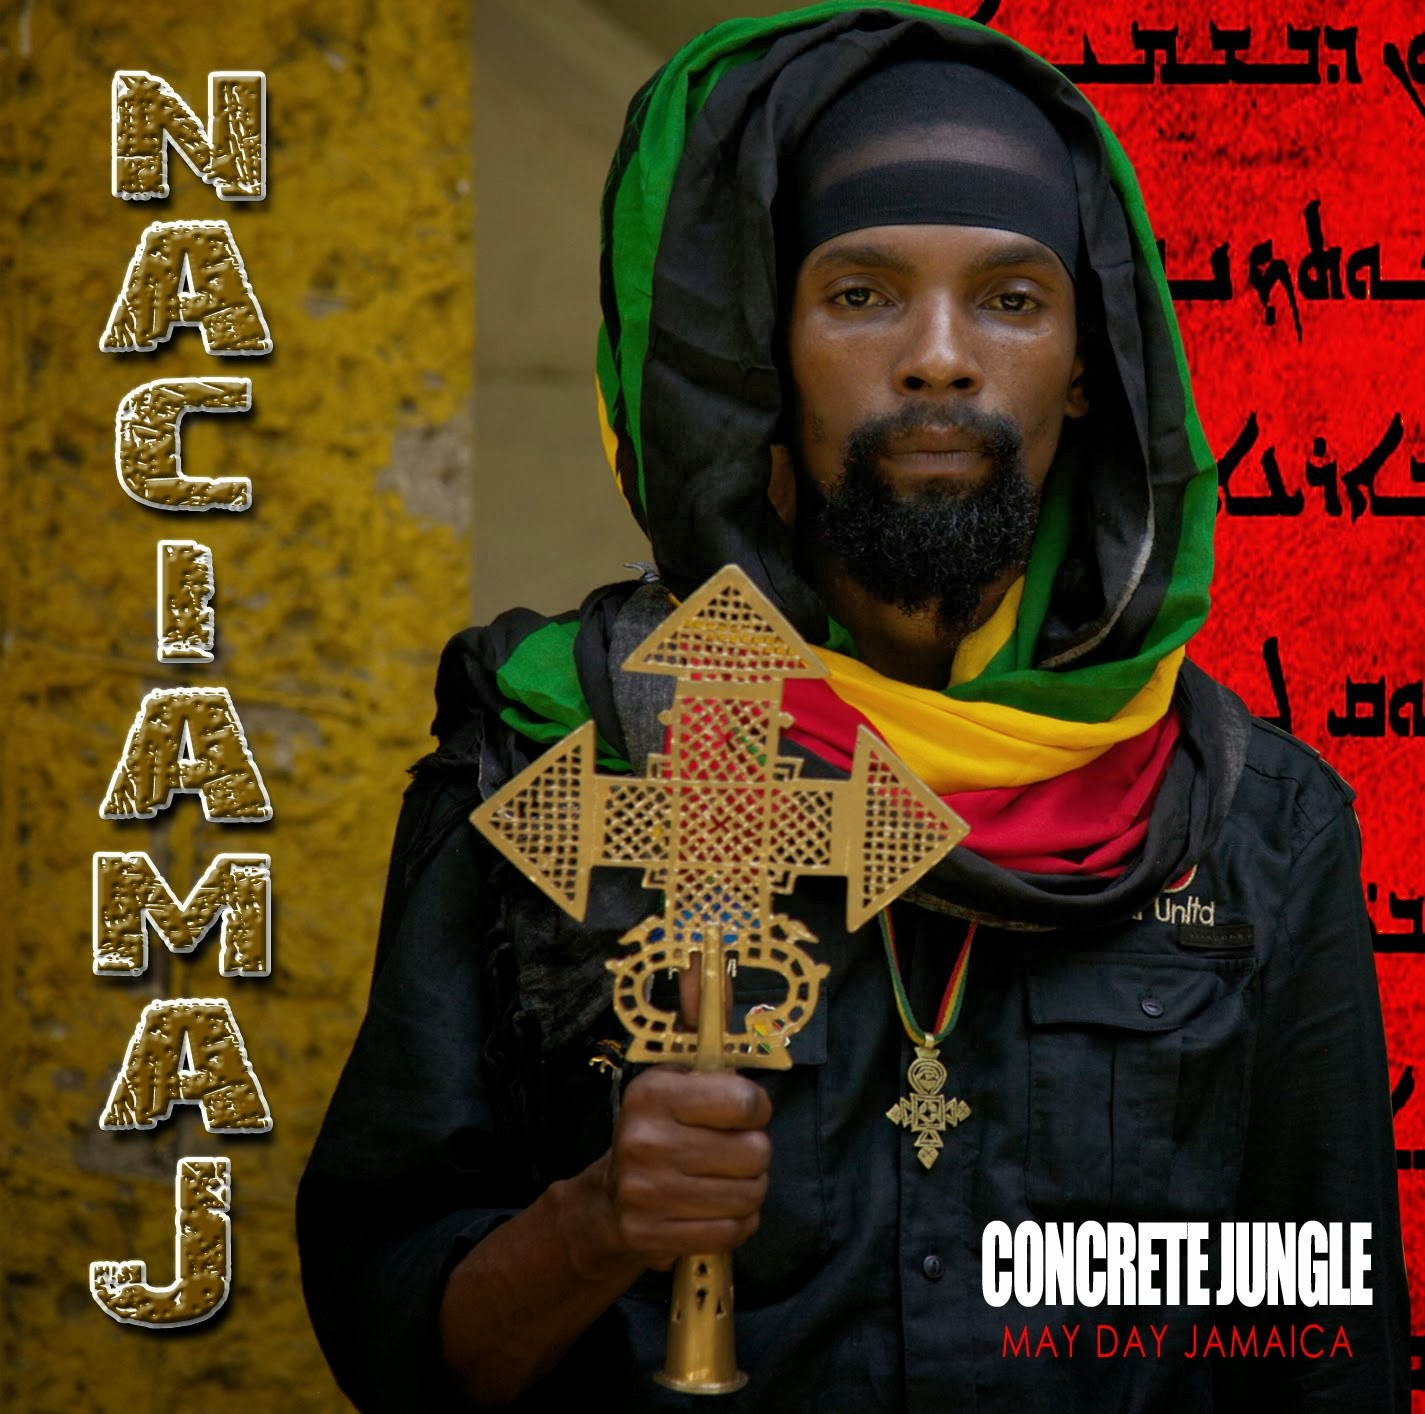 NACIAMAJ - CONCRETE JUNGLE [FMI] #RASTARRECORDS